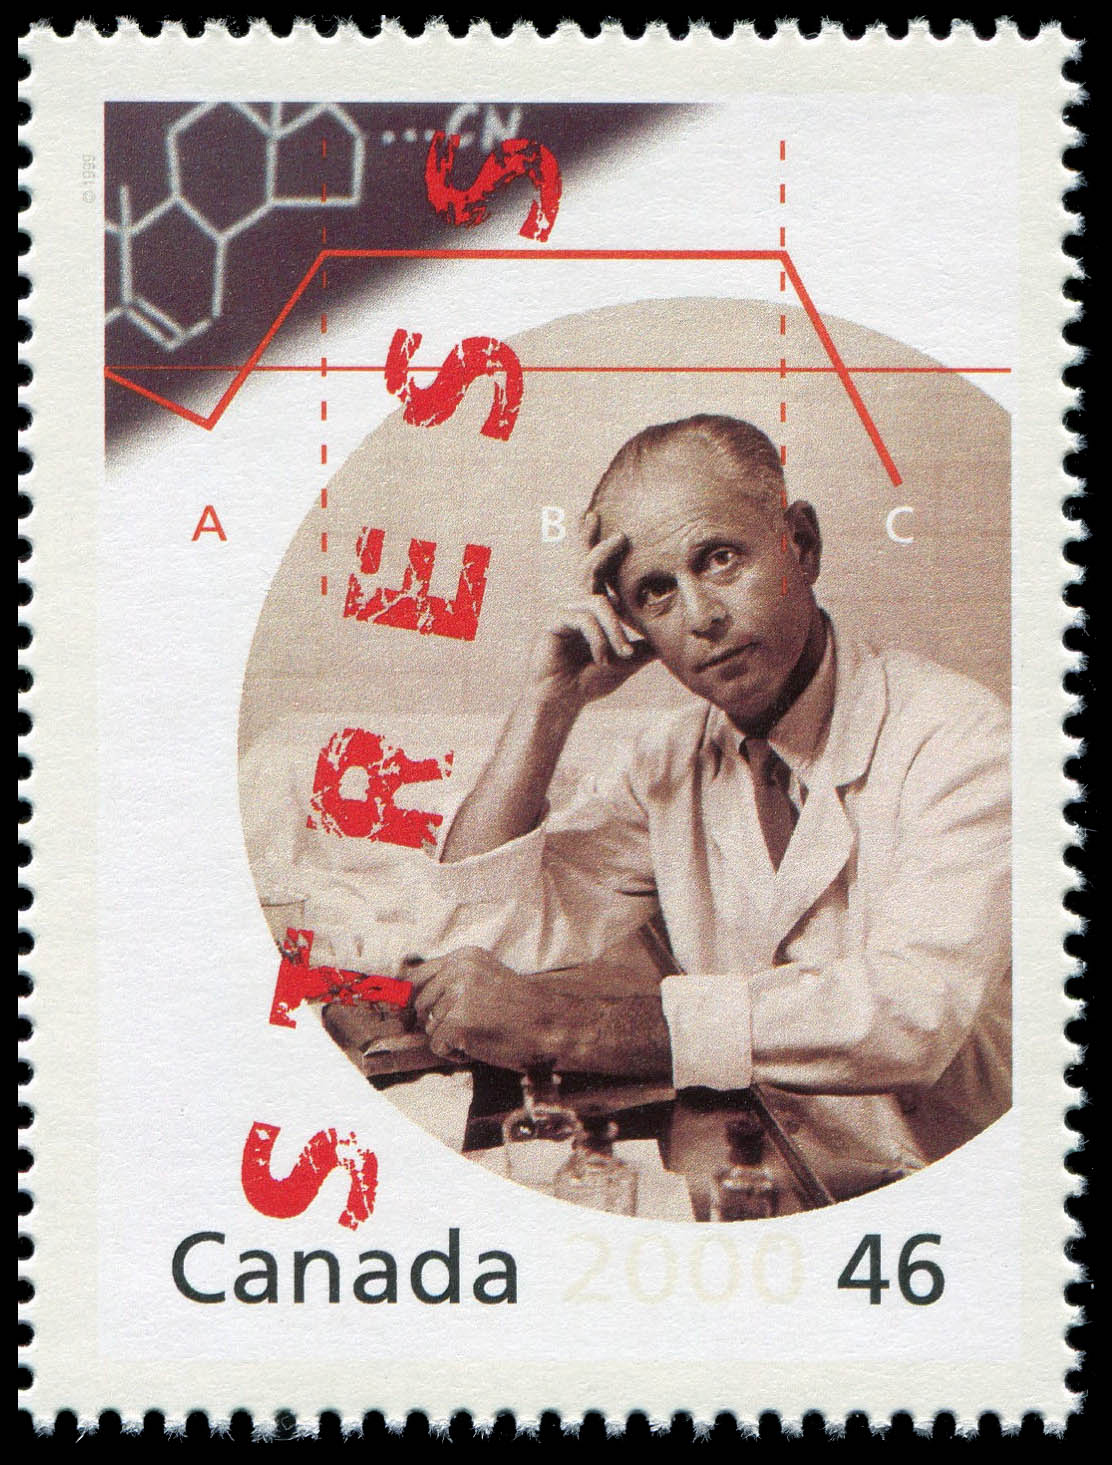 Dr. Hans Selye: Documenting the Stress of Life Canada Postage Stamp